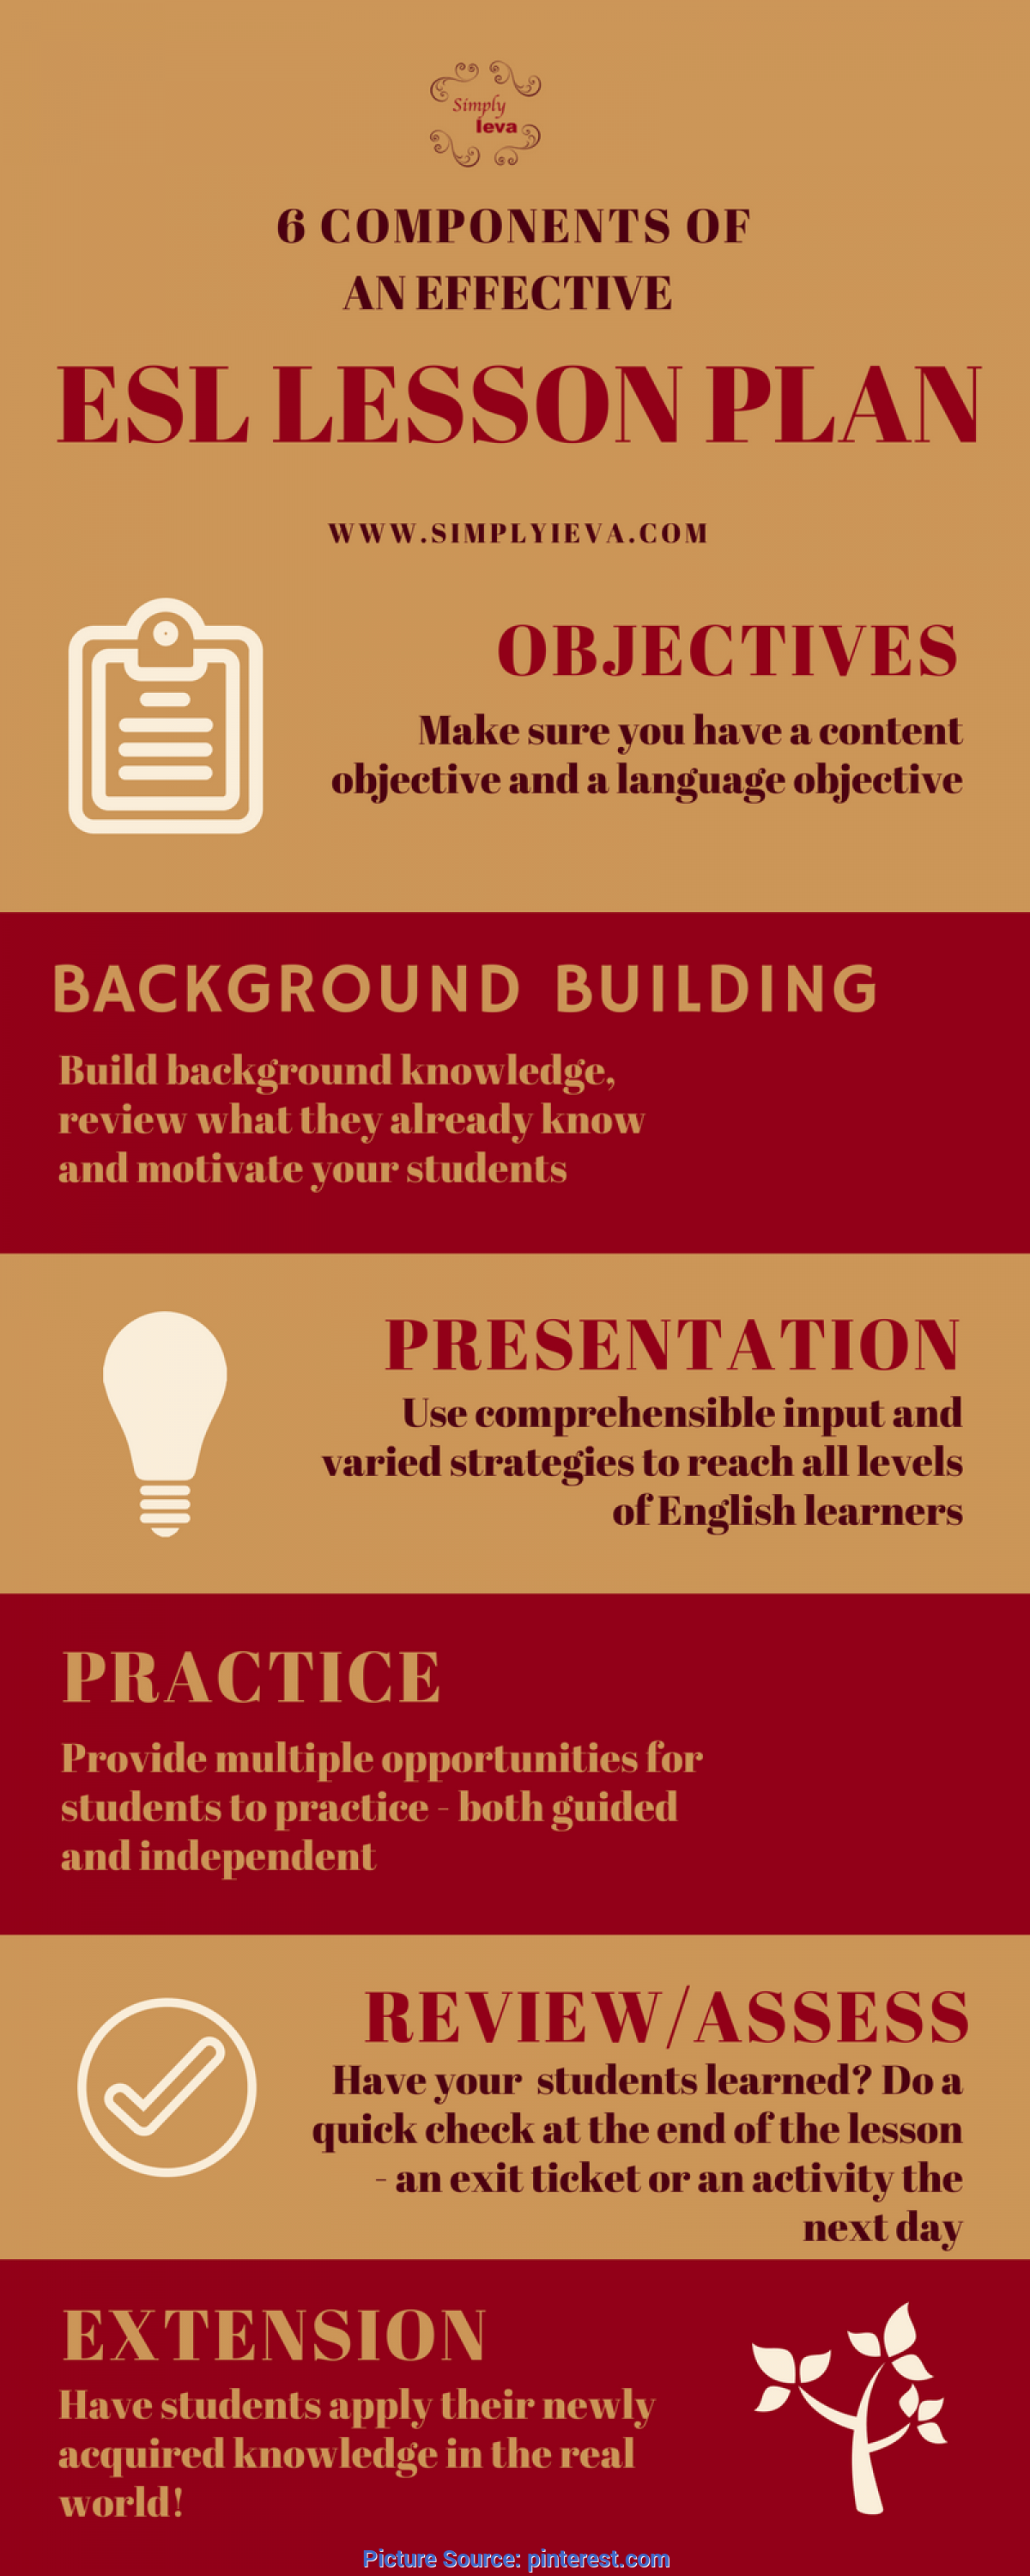 Valuable Siop Lesson Plan Learning Strategies 6 Elements Of An Effective Esl Lesson